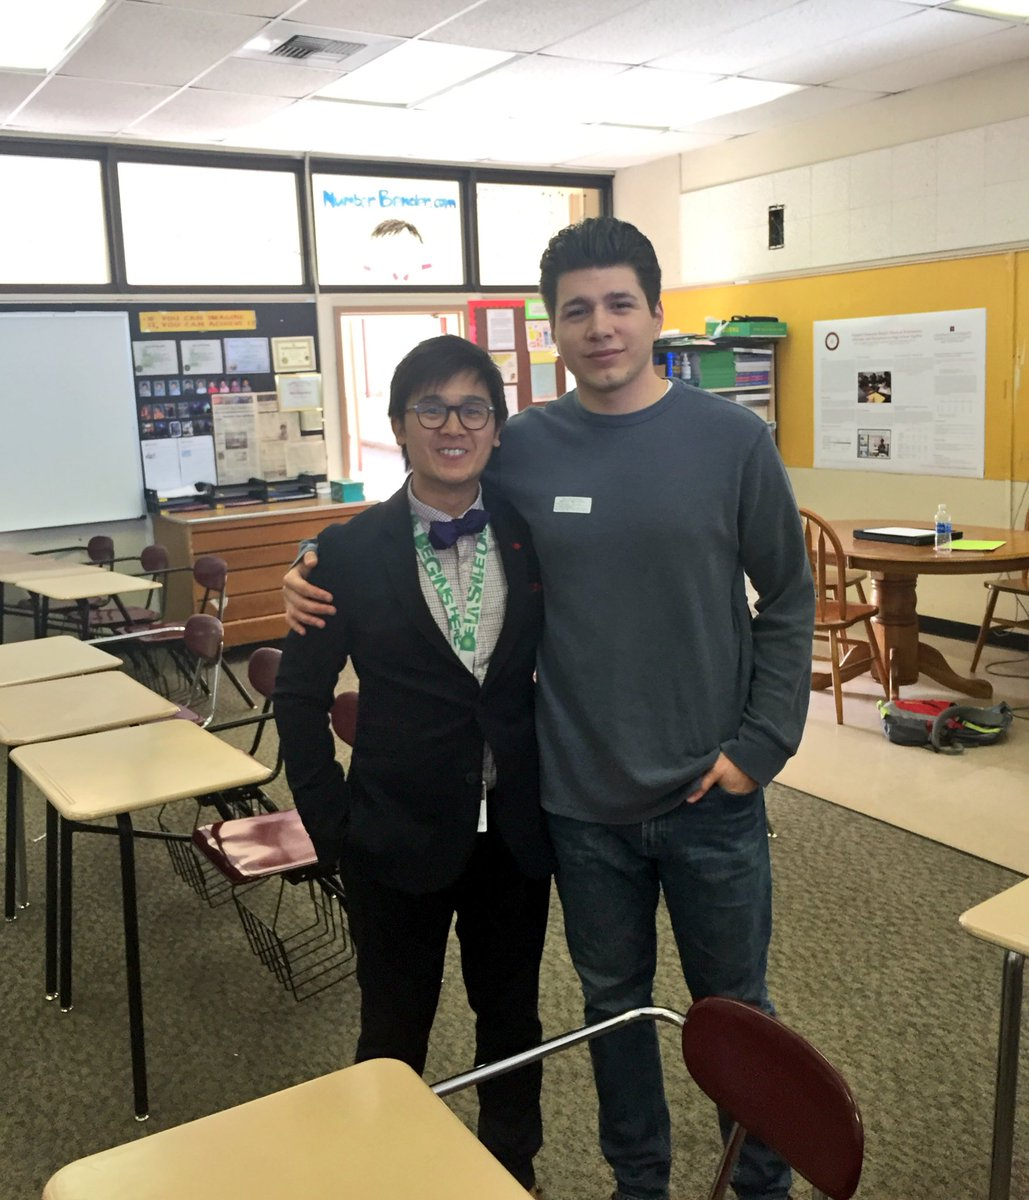 numberbender ed d number bender twitter ksuanthrograds codeman829 thank you for sharing your research and inspiring bhs students to do great things after high school